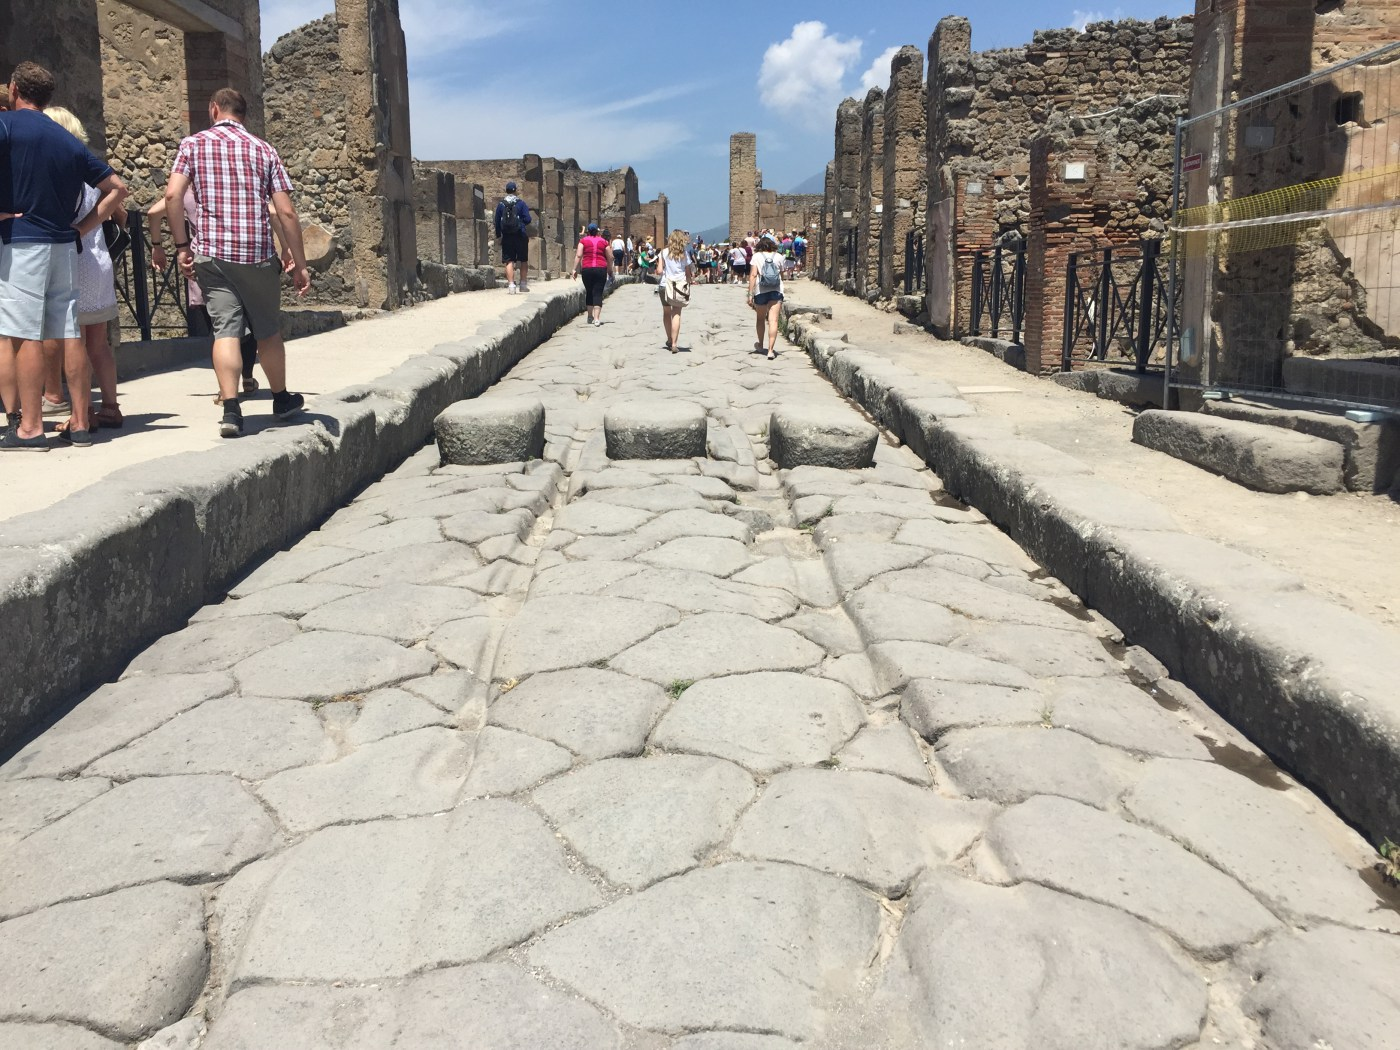 Speed bumps in ancient Pompeii